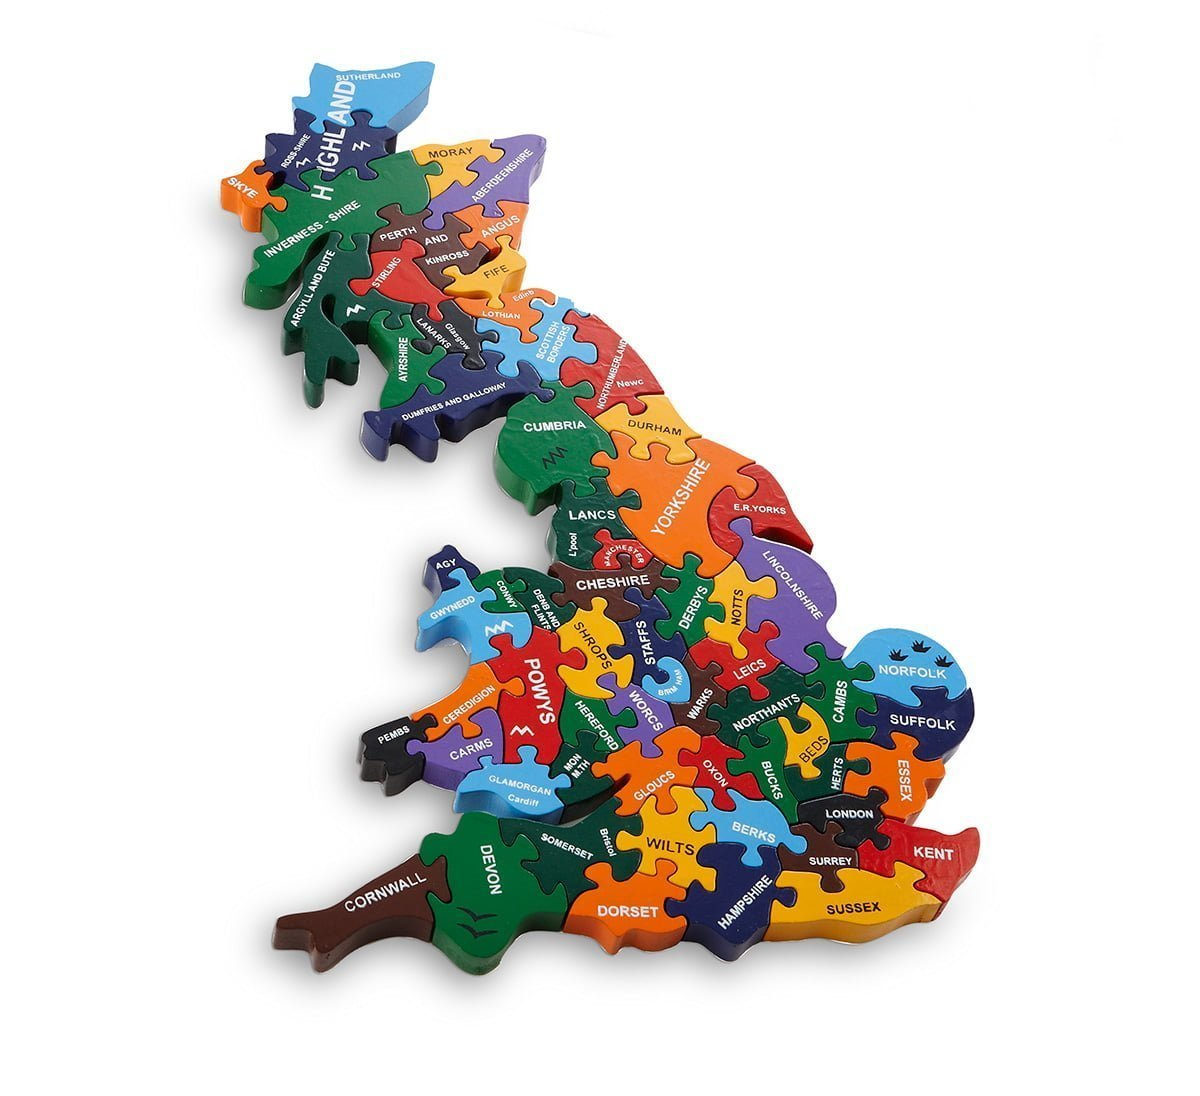 Map Of Britain Wood Like To Playwood Like To Play